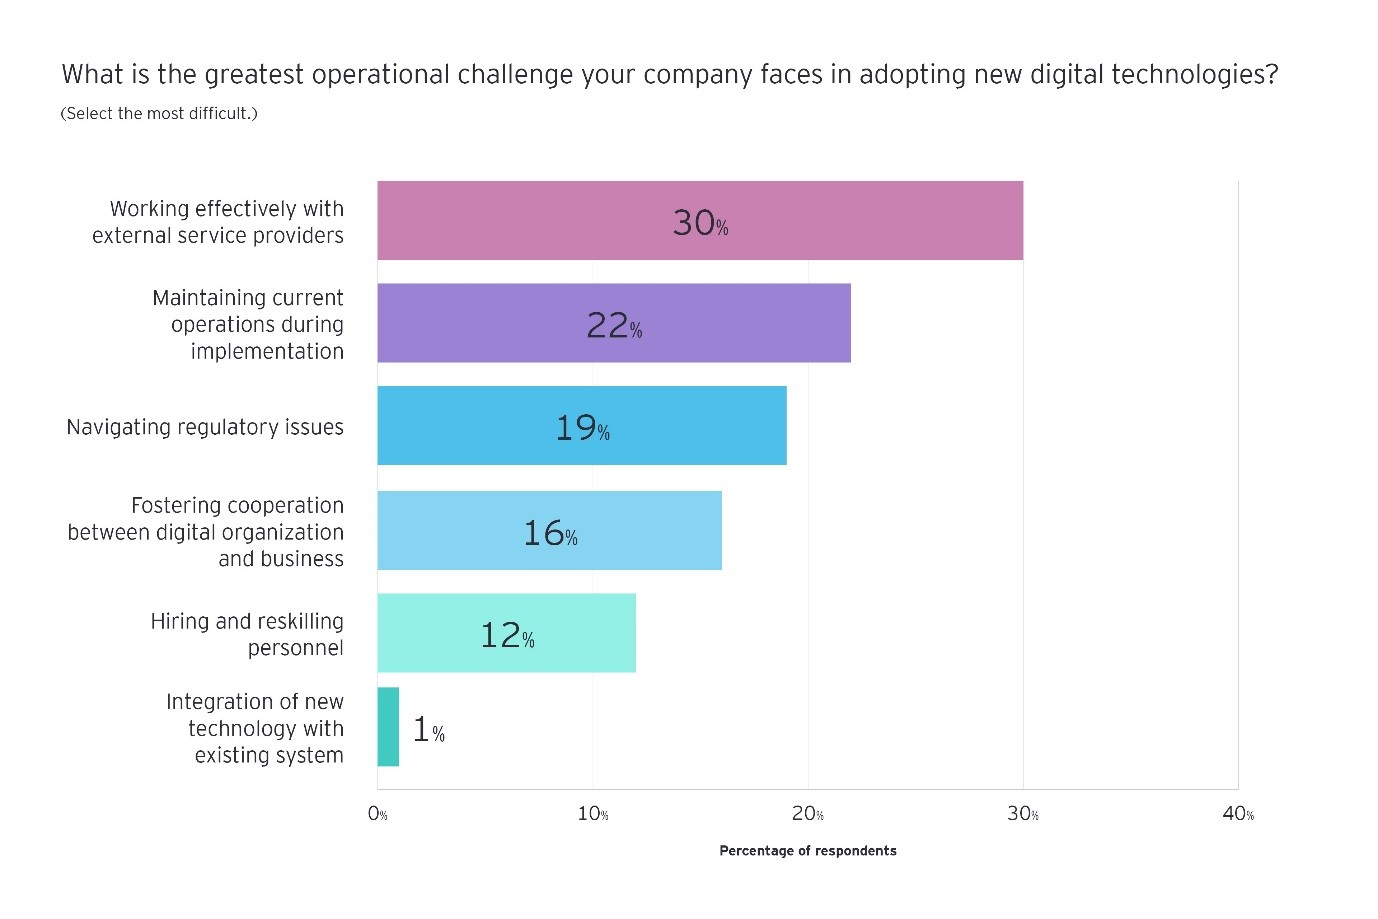 what is the greatest operational challenge your company faces in adopting new digital technologies